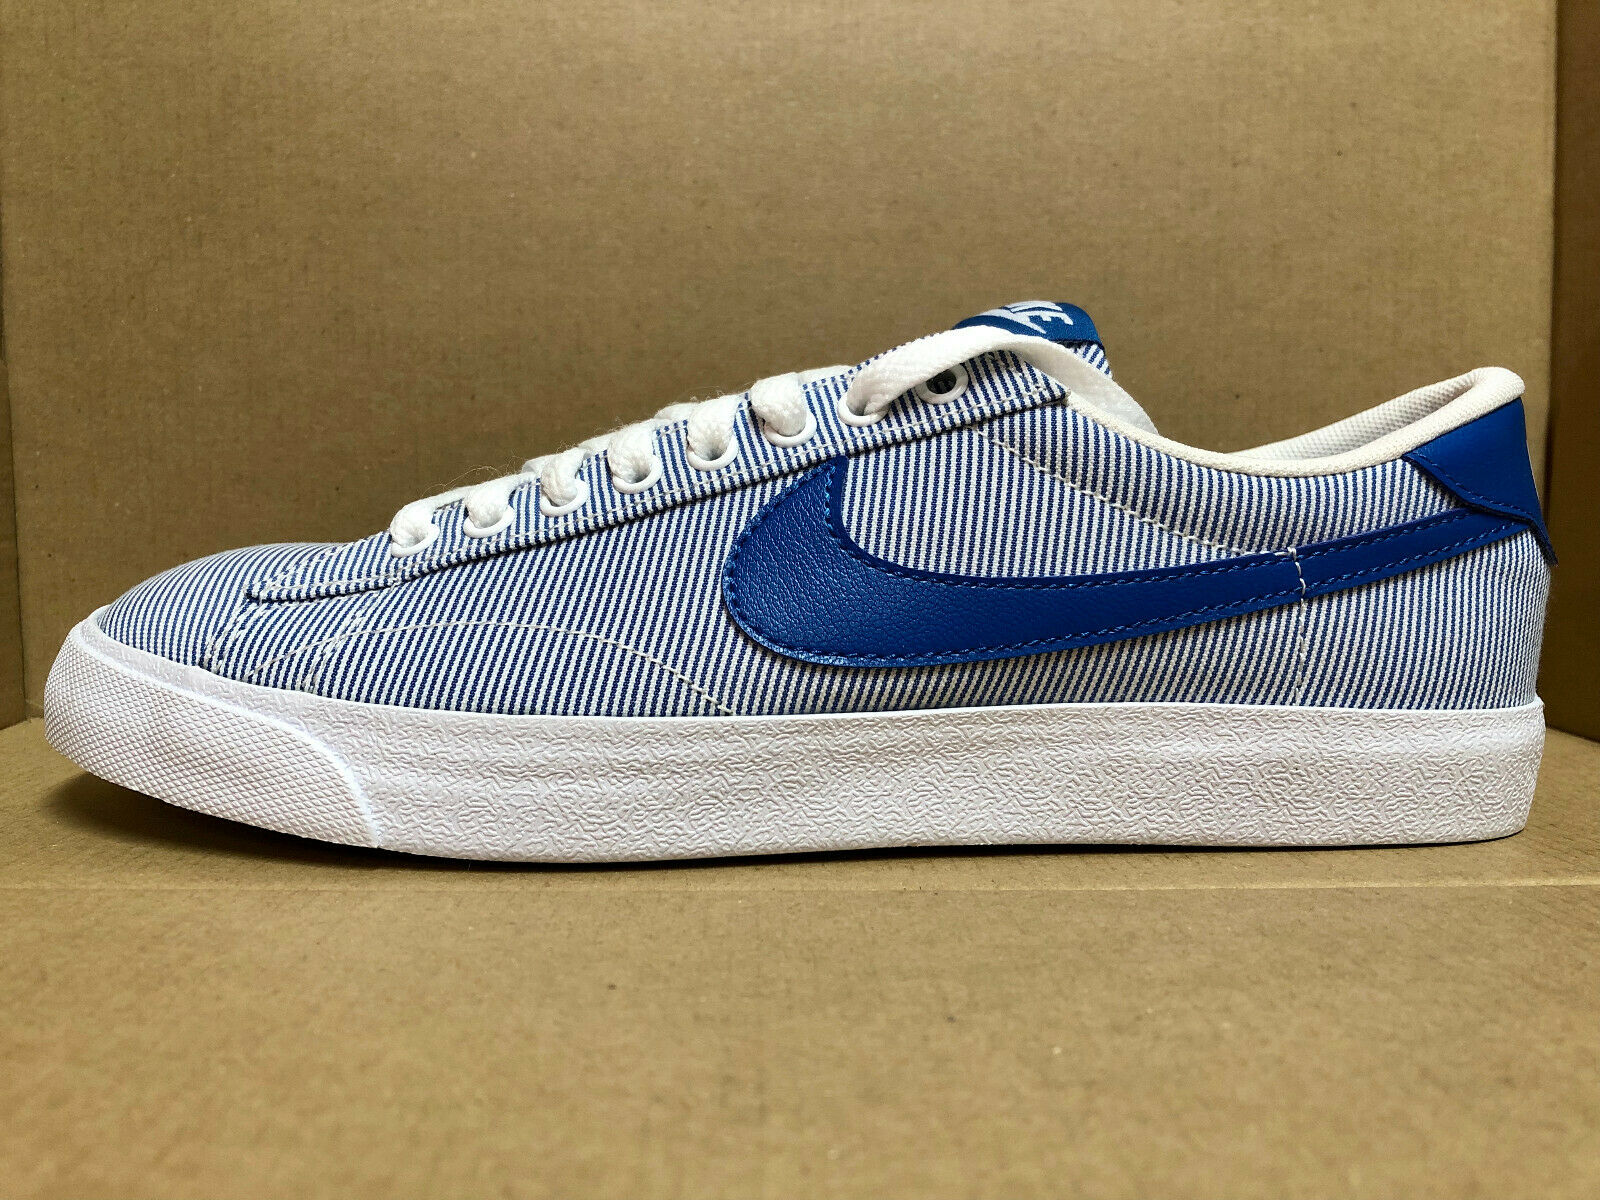 NIKE MEN'S TENNIS CLASSIC AC SHOES SIZE 7.5 white bluee 377812 148